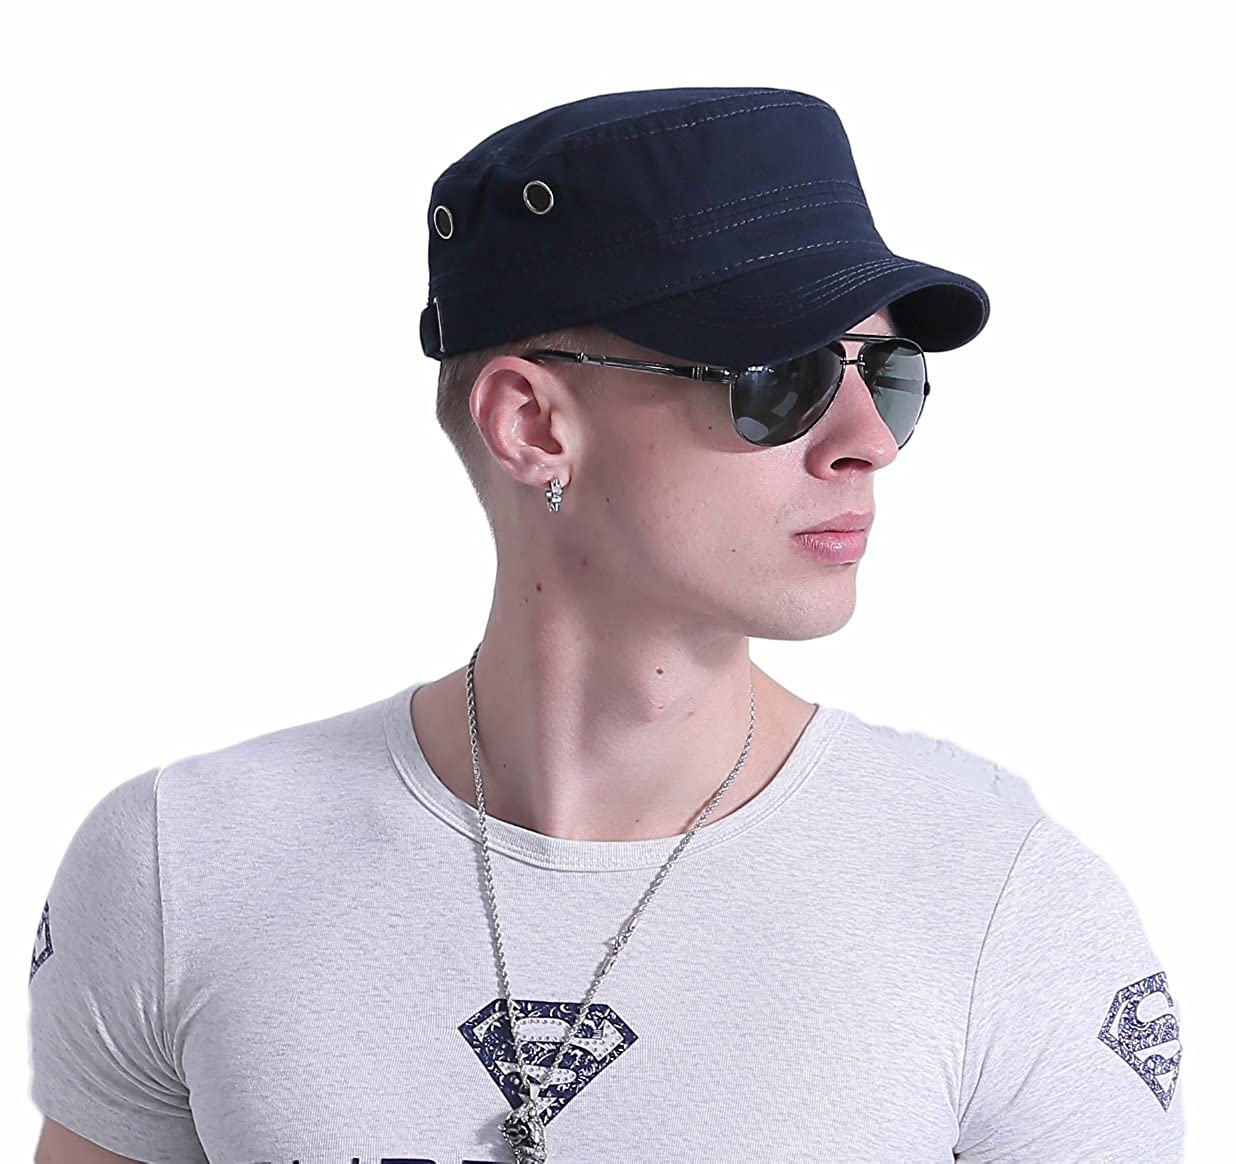 CACUSS Men's Cotton Army Cap Cadet Hat Military Flat Top Adjustable Baseball Cap P0064Black2